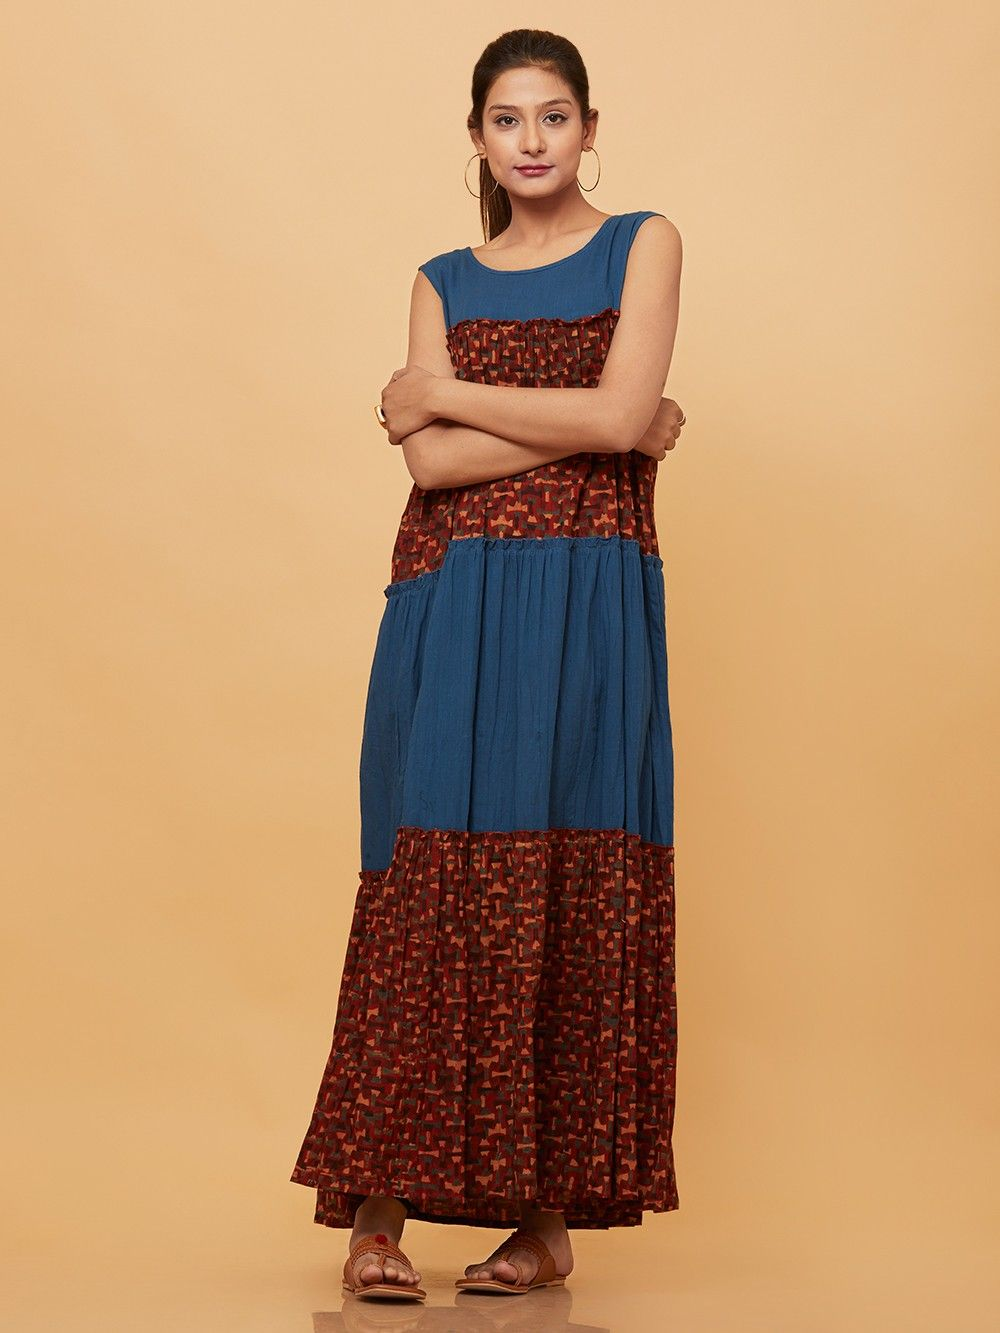 0ad51ea6f7e3 Buy Maroon Blue Cotton Ajrakh Printed Crushed Maxi Dress online at ...